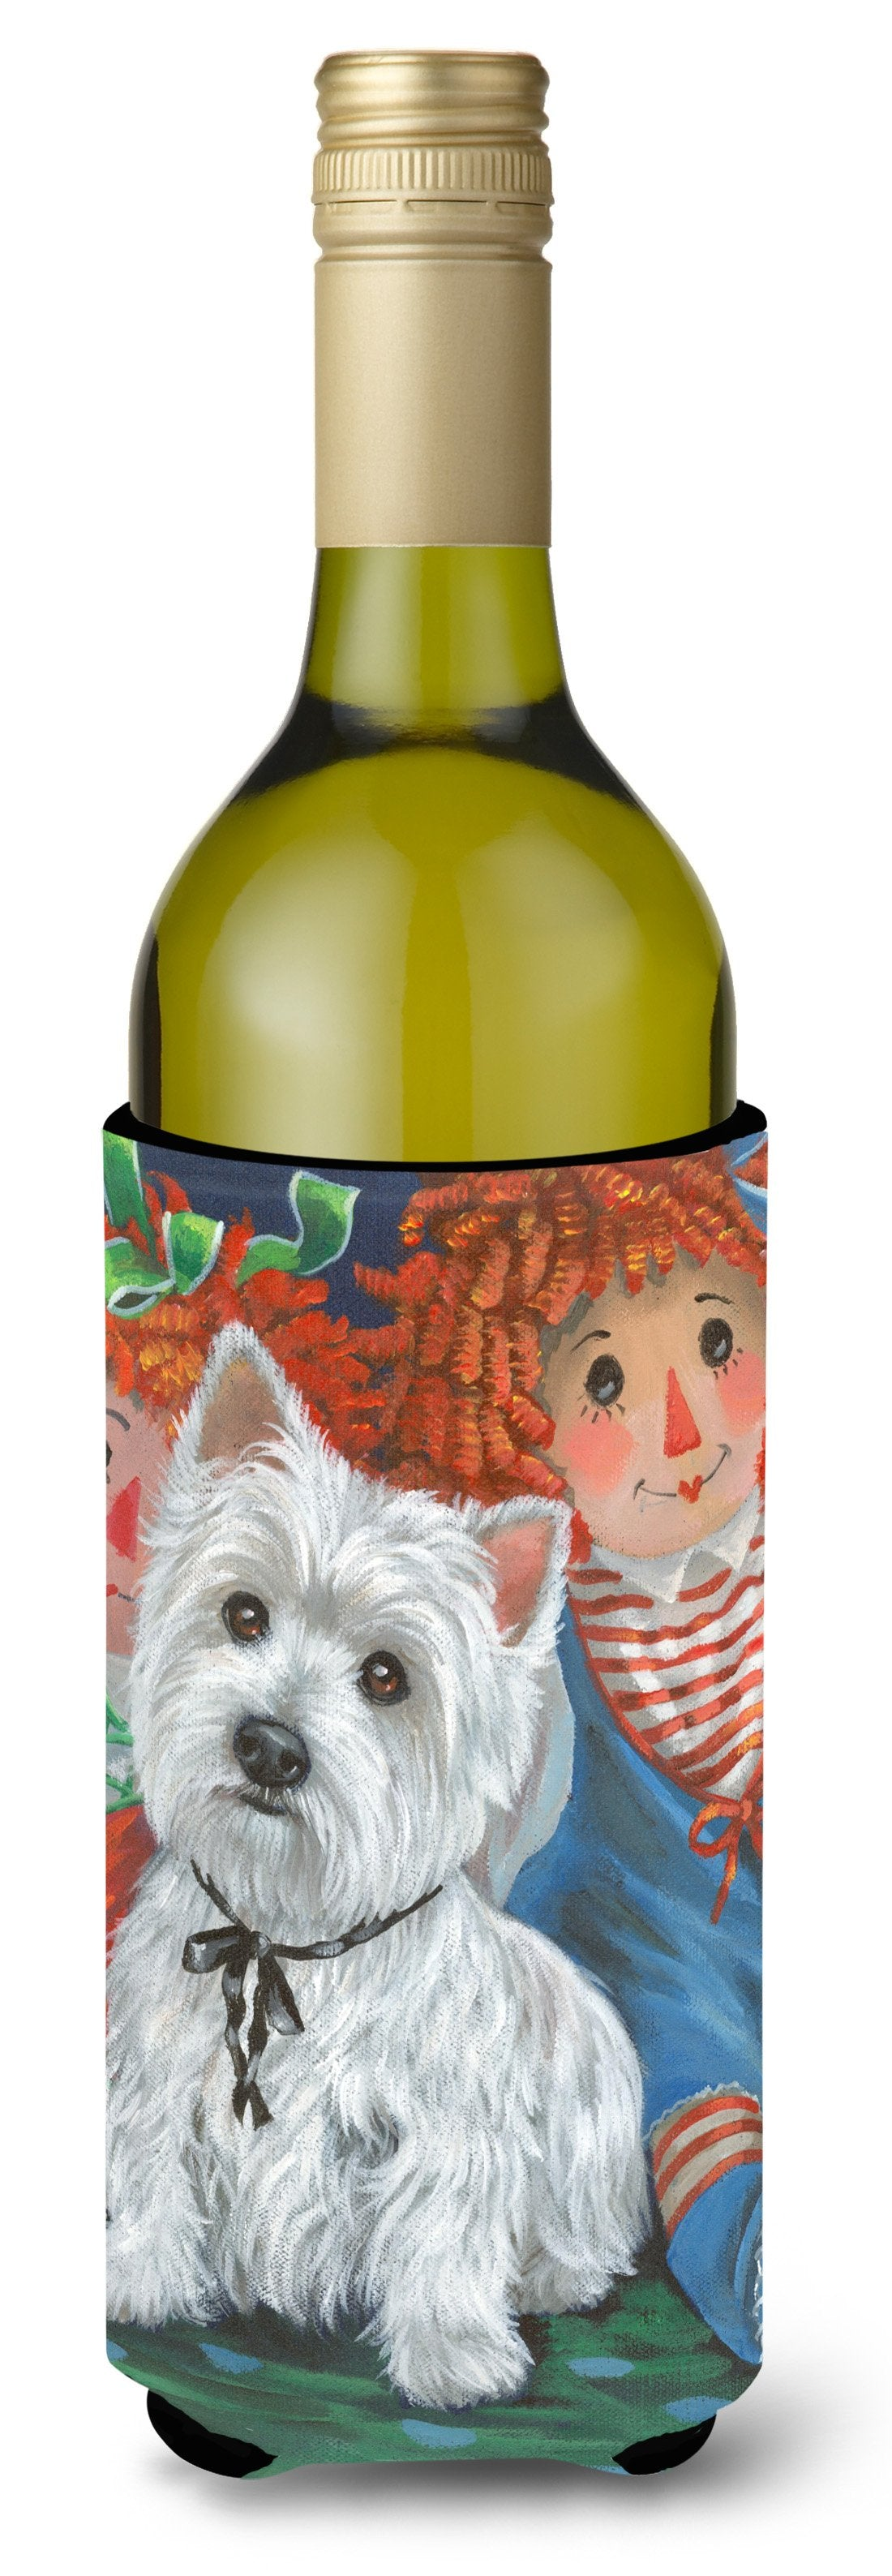 Westie Ragdoll Wine Bottle Hugger PPP3226LITERK by Caroline's Treasures